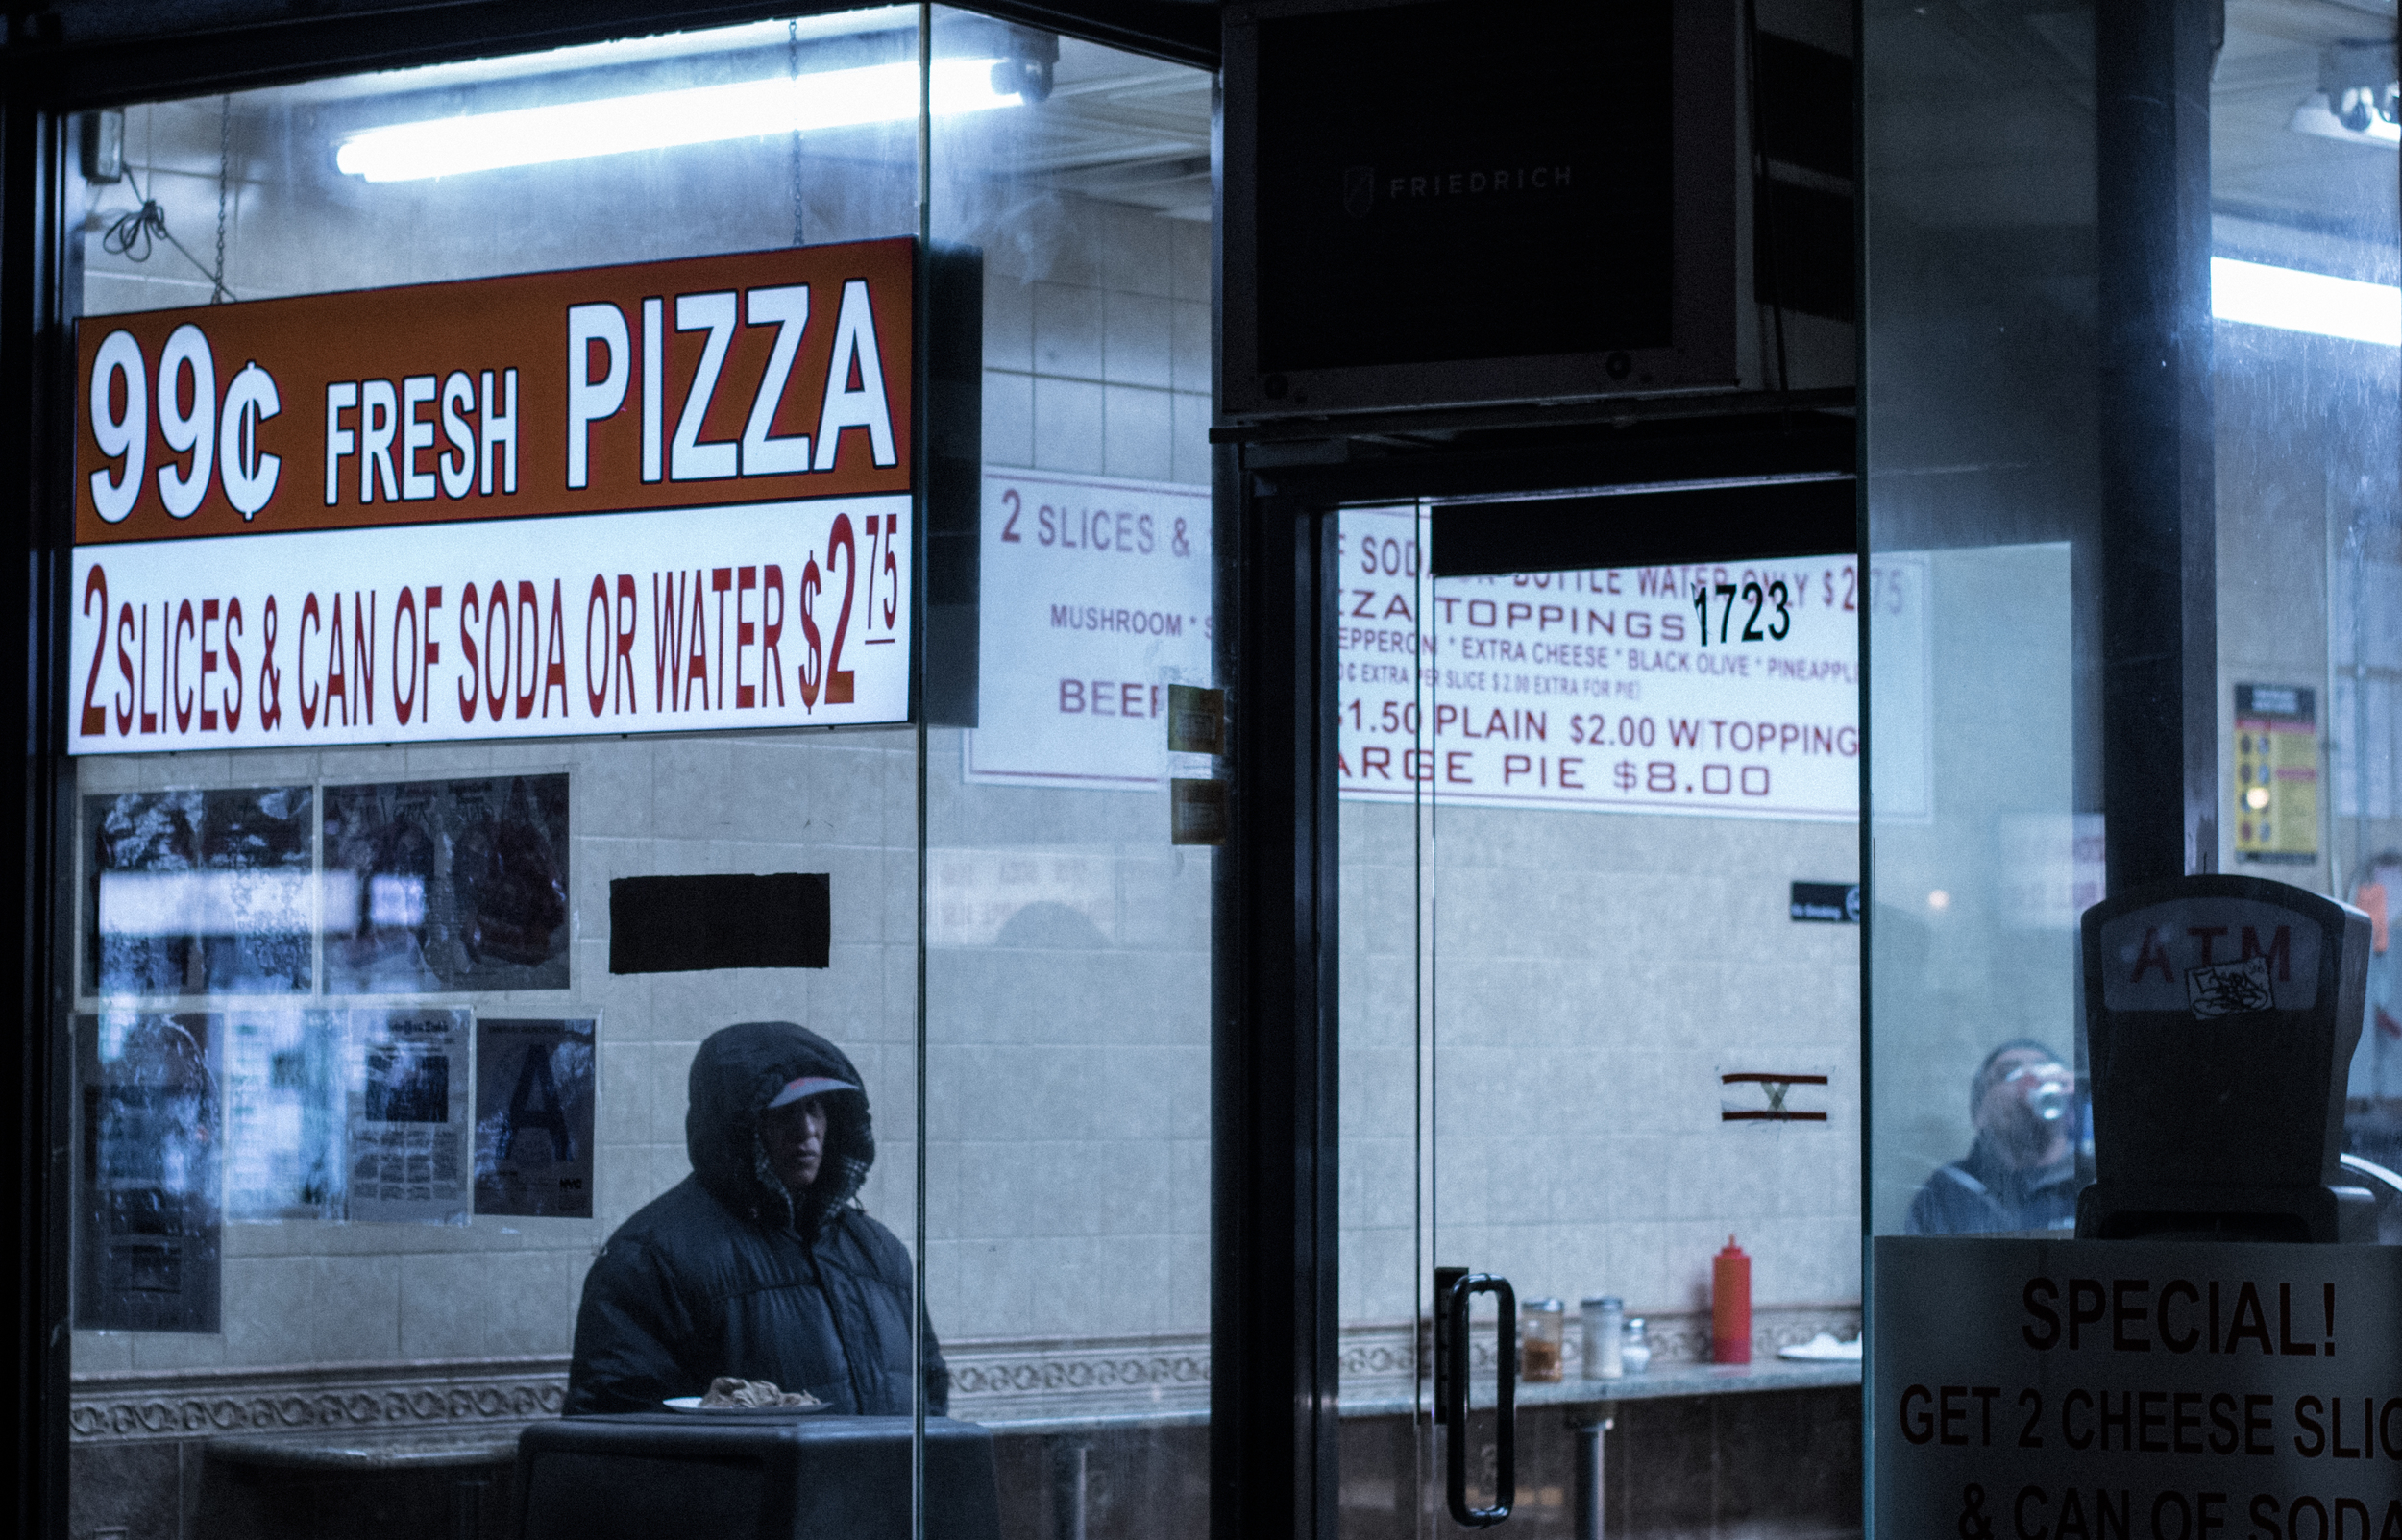 9 - 99 Cent Fresh Pizza 1.20.15.jpg